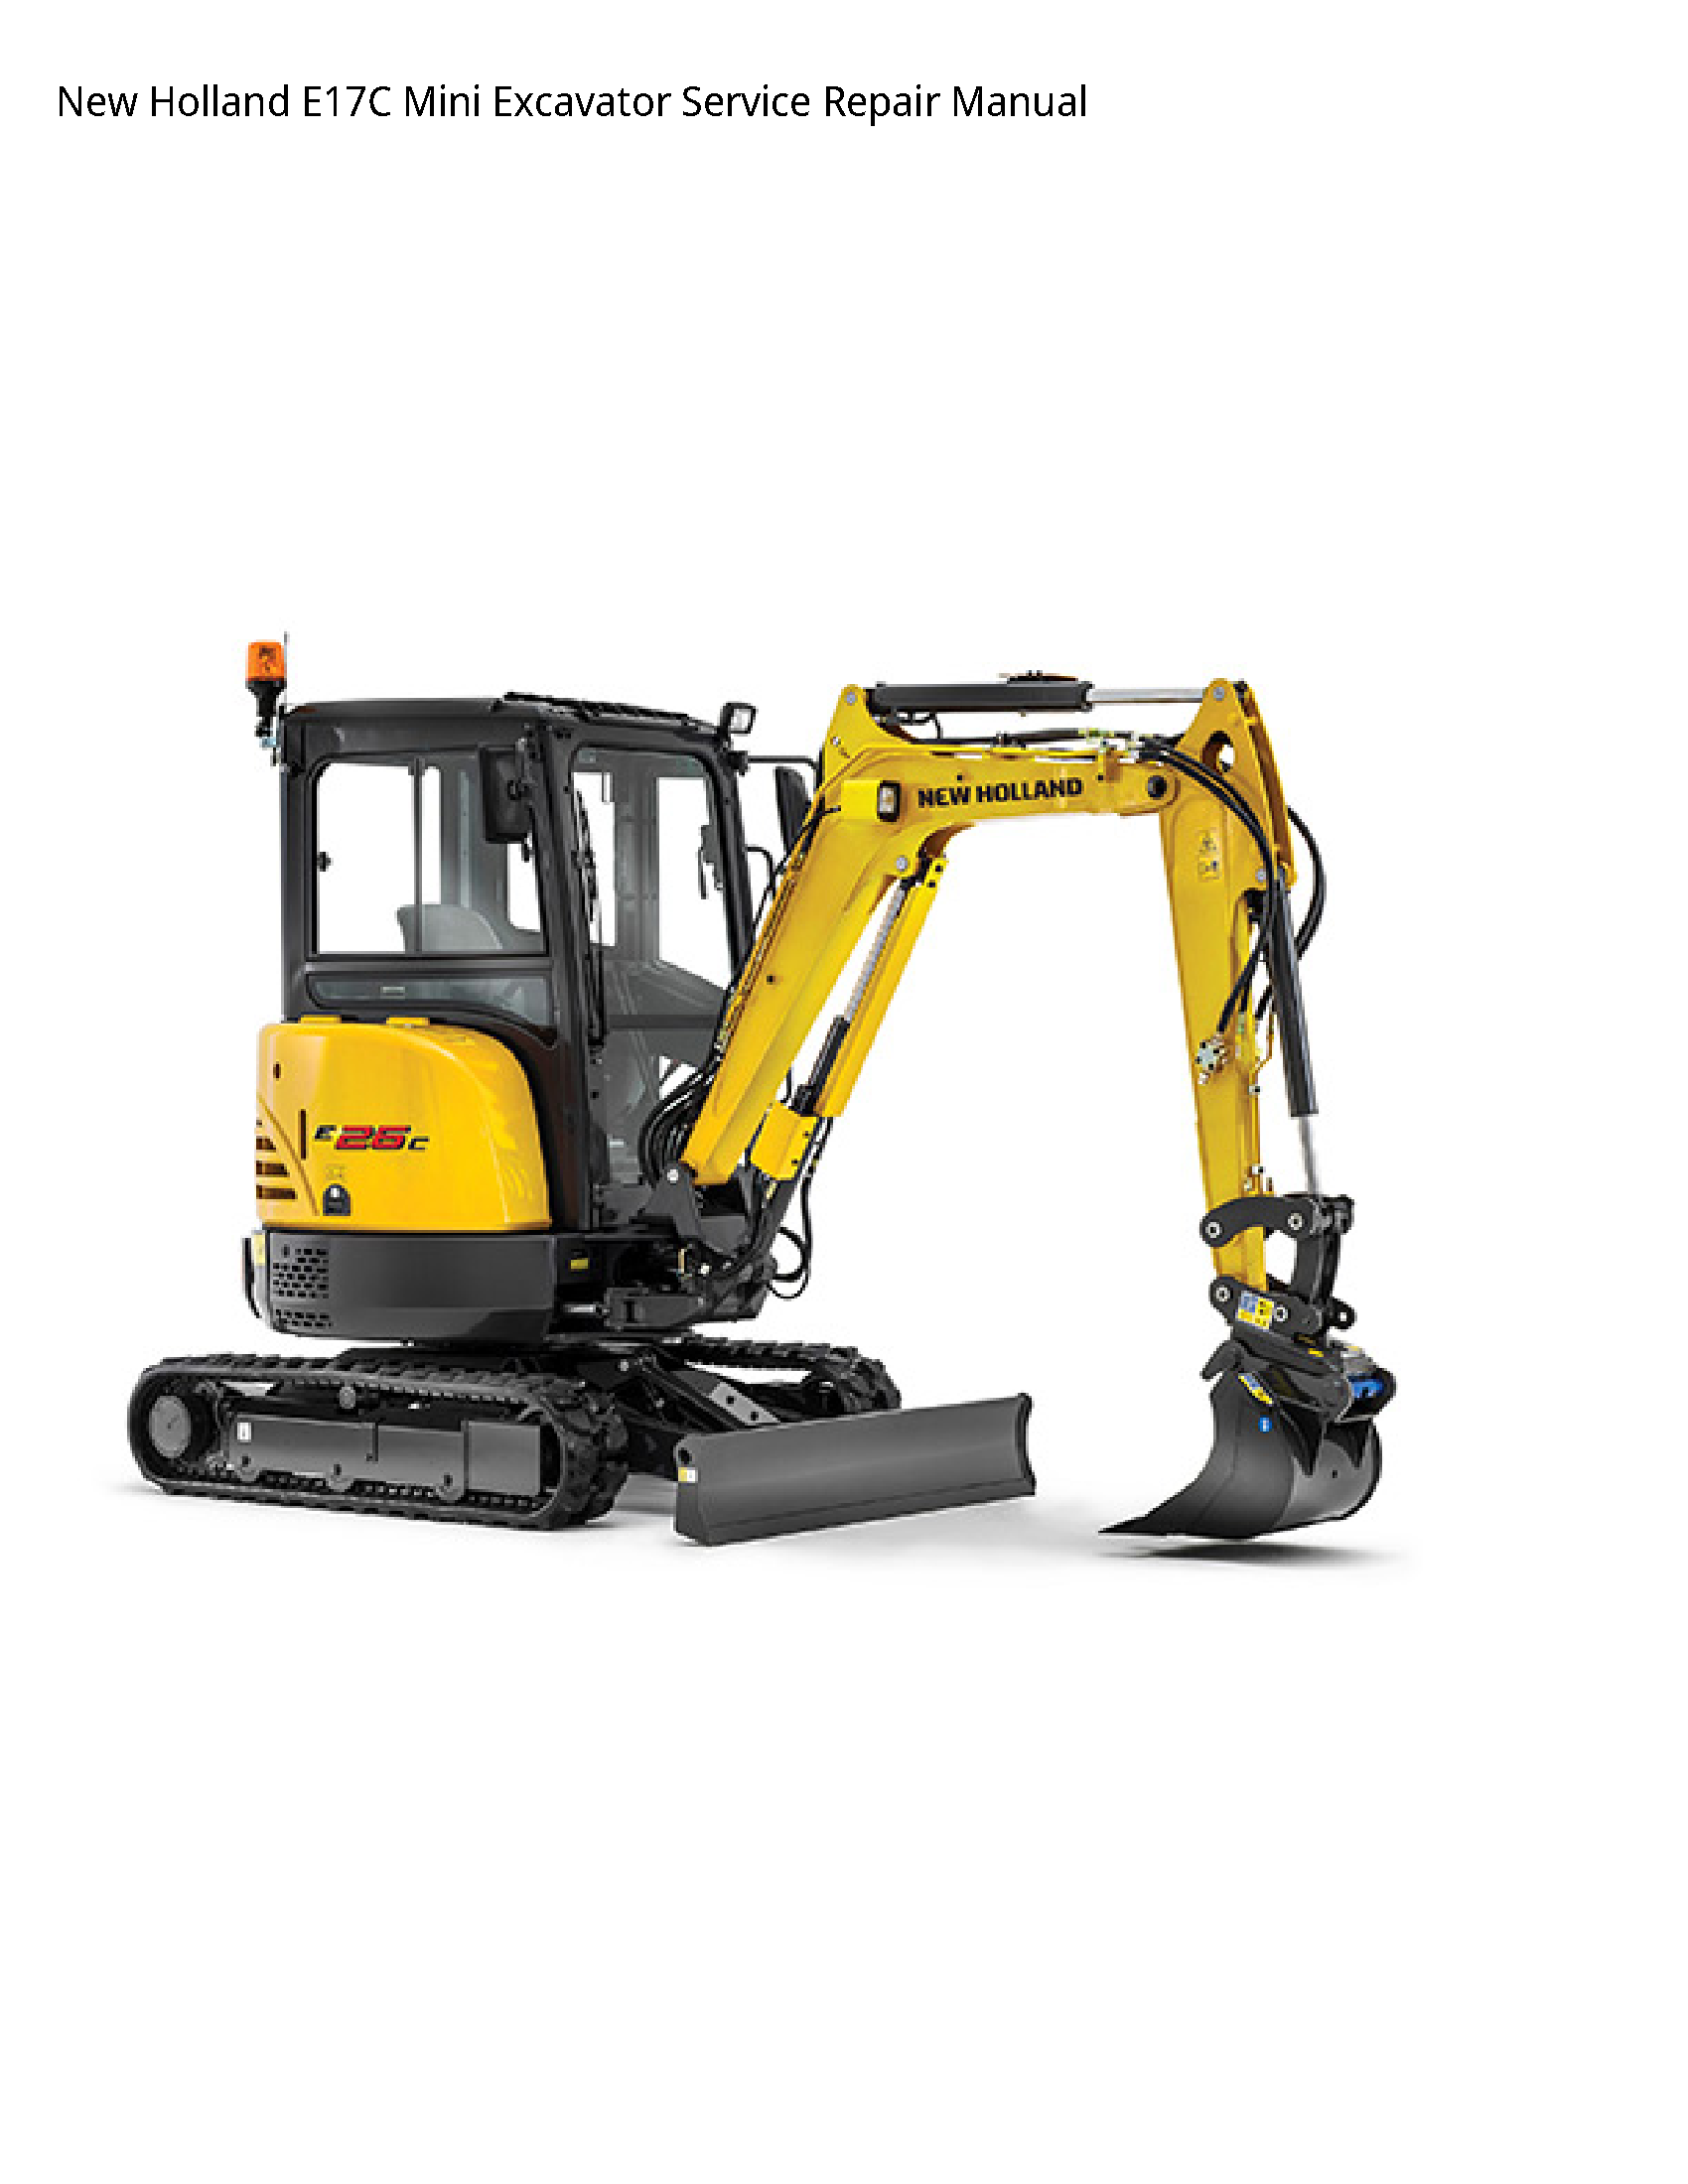 New Holland E17C Mini Excavator manual